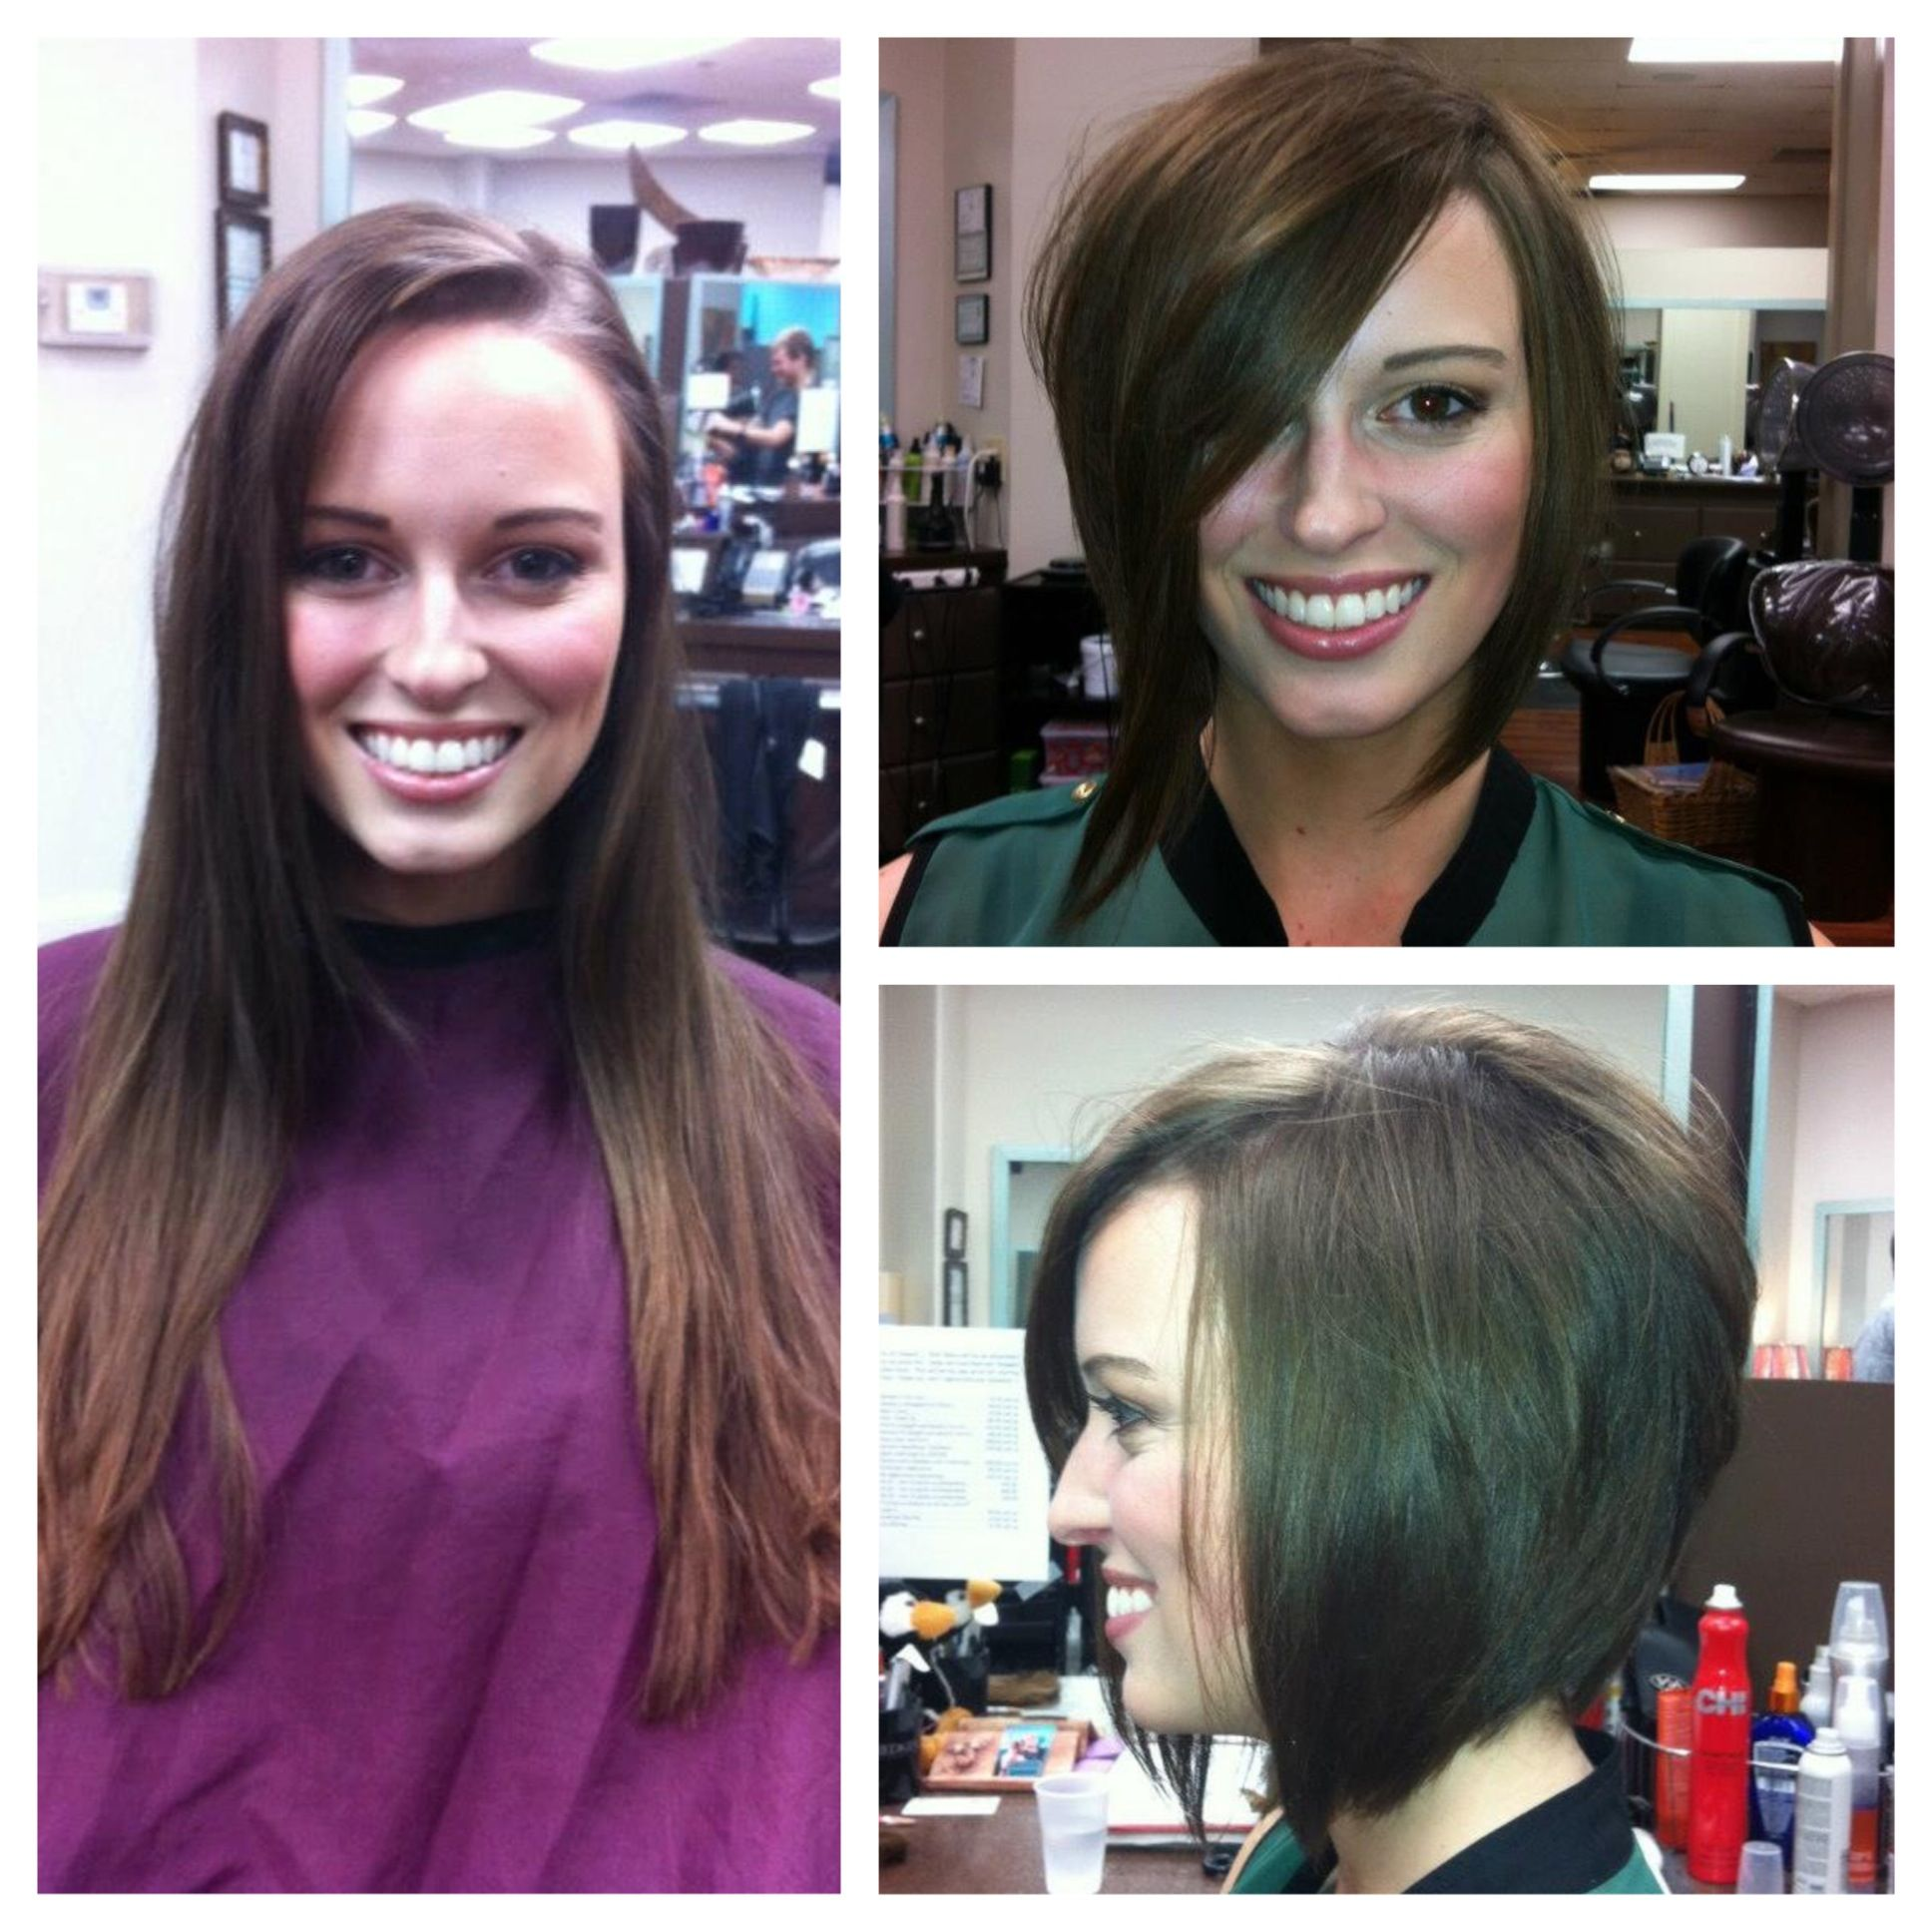 Before And After Haircut Cute Angled Stacked Textured Bob Makeover Lex Moore Style House Salon Before And After Haircut Hair Makeover Long To Short Hair